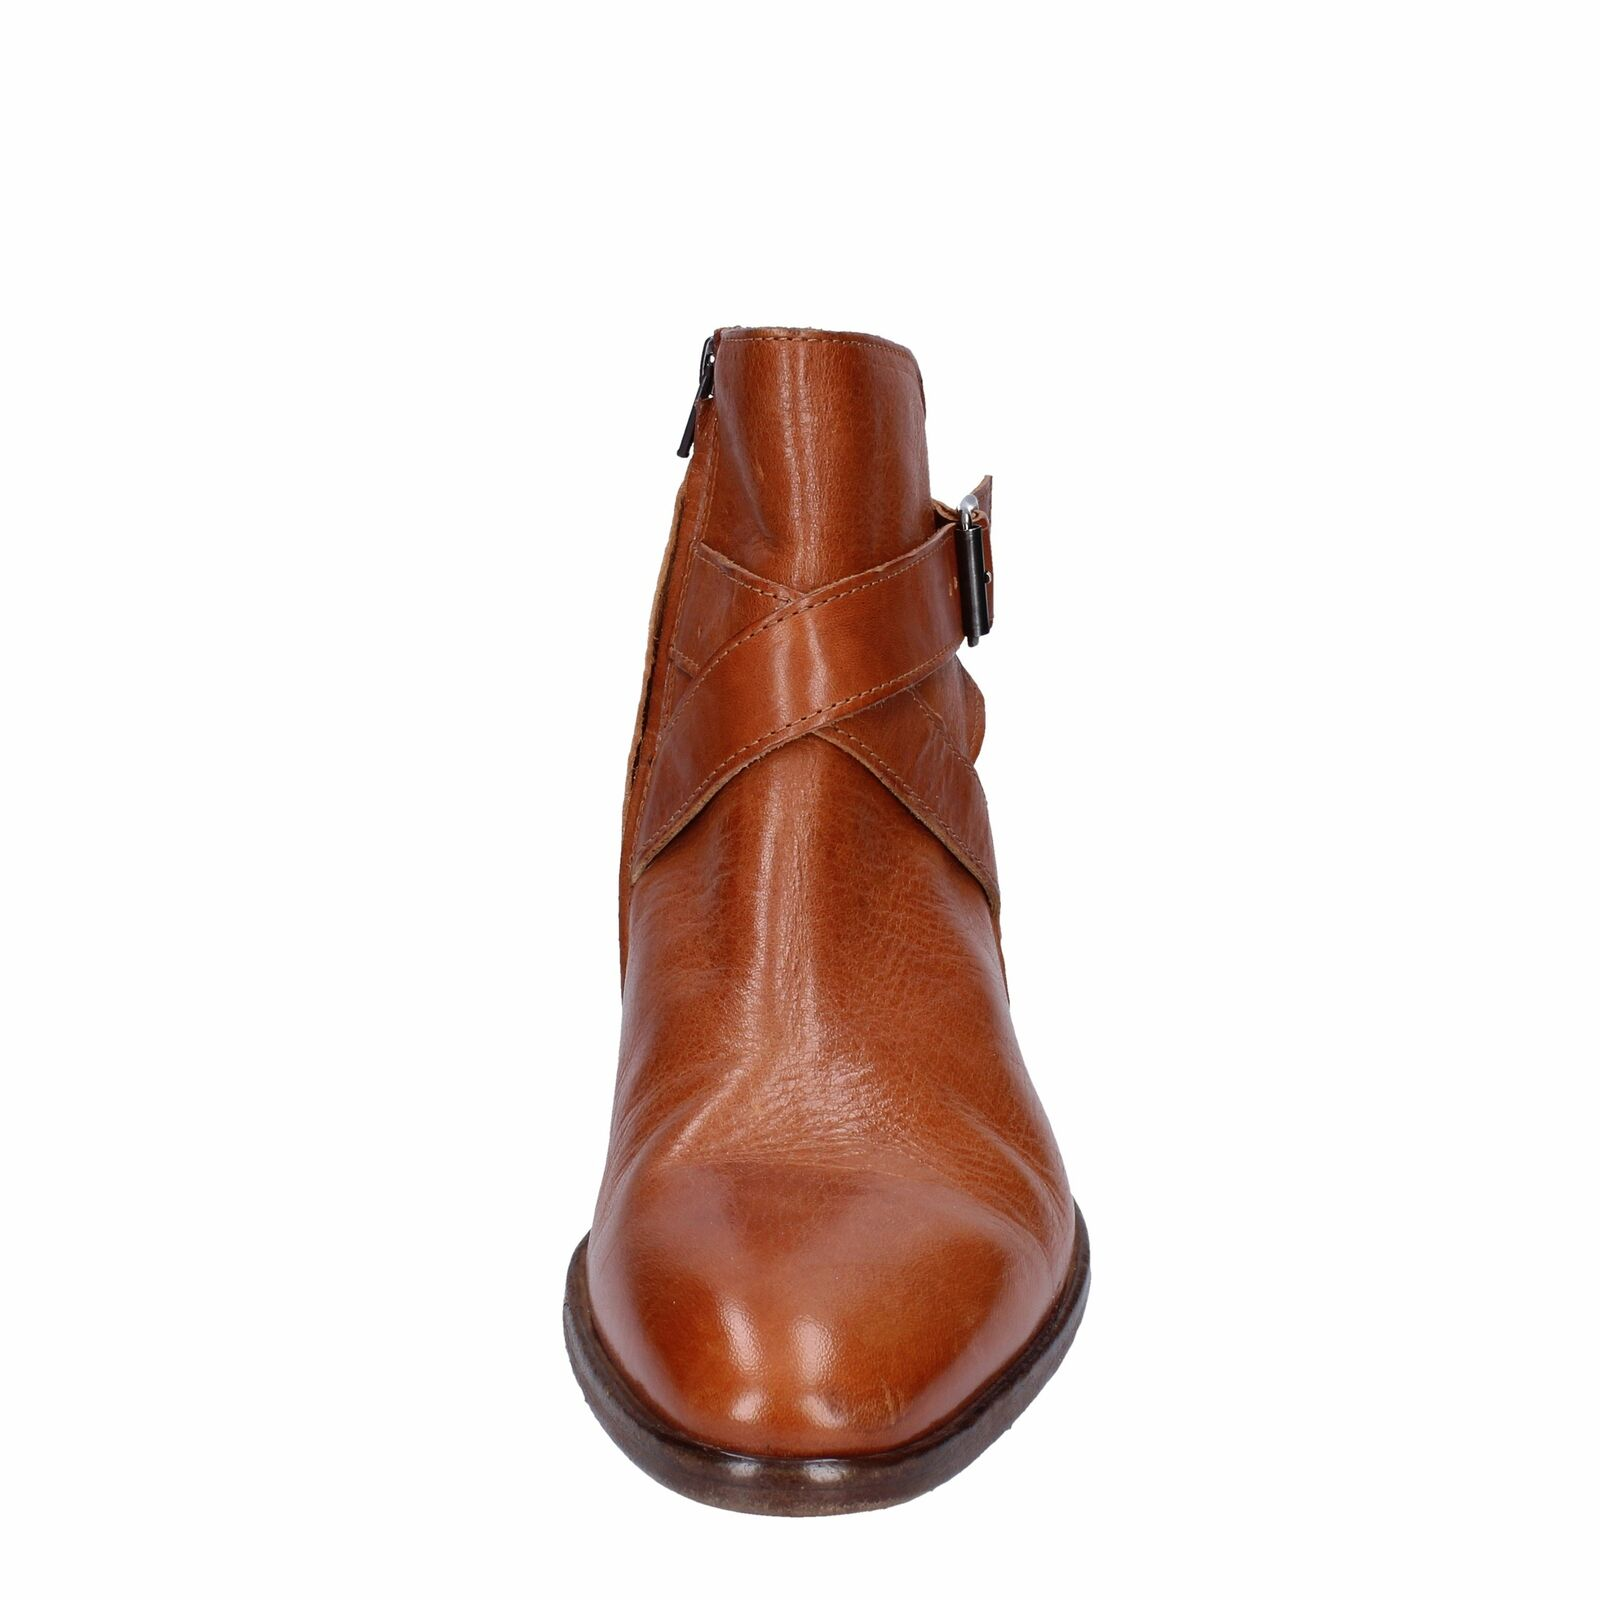 Shoes man Moma Boots Brown Leather bk57